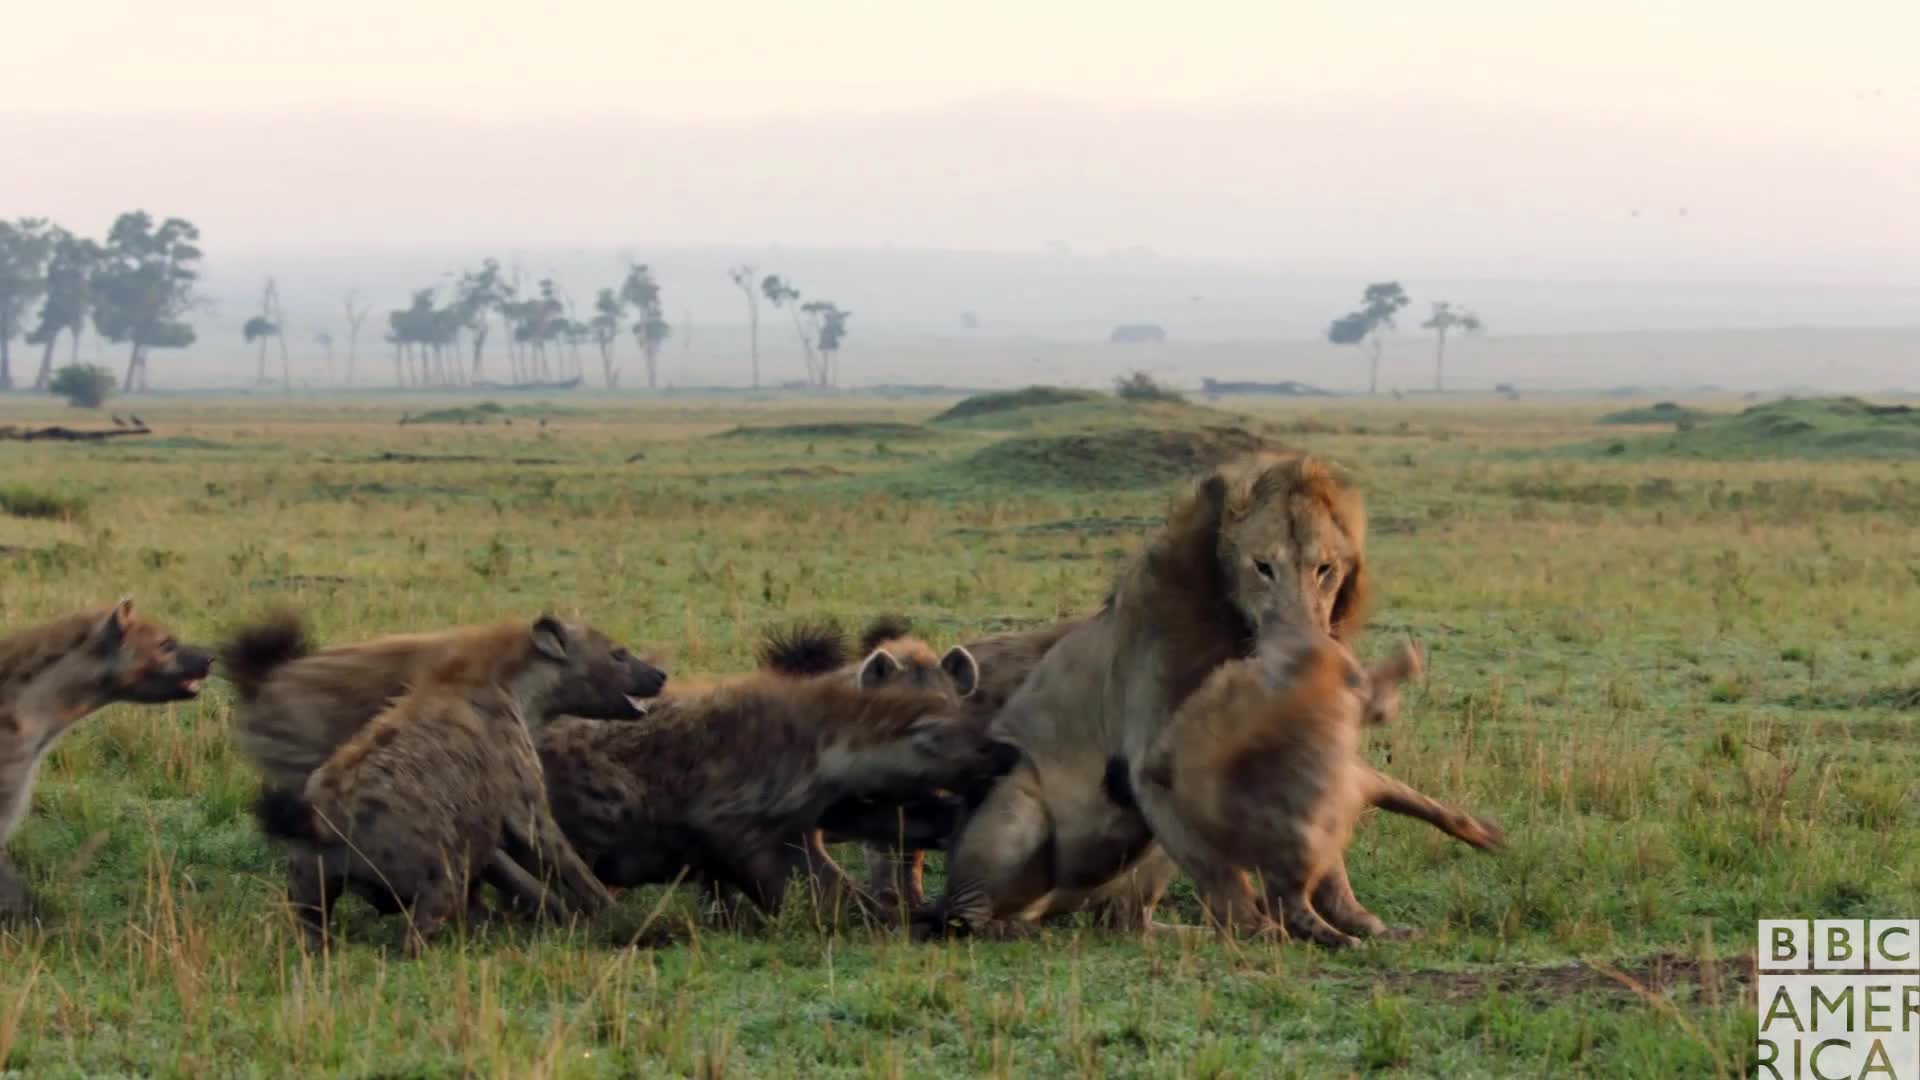 animal, animals, bbc america, bbc america dynasties, bbc america: dynasties, dynasties, fight, fighting, lion, lions, oh no you didn't, oh snap, Dynasties Lion Bullied by Hyenas GIFs